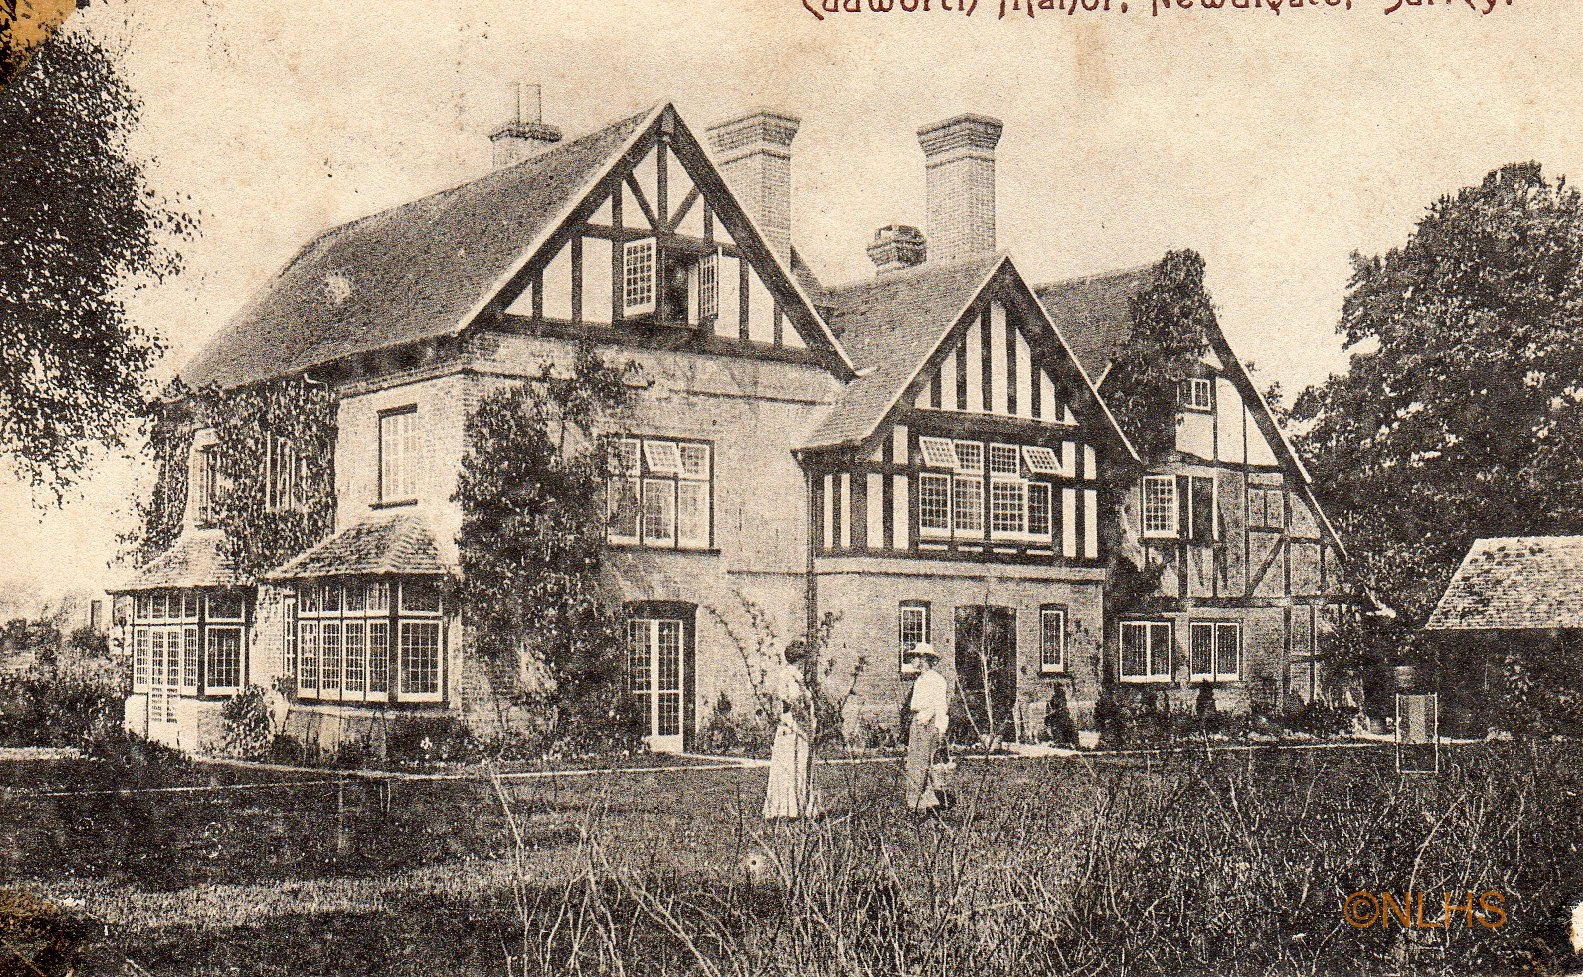 Cudworth Manor - 1 -Postmark 1904